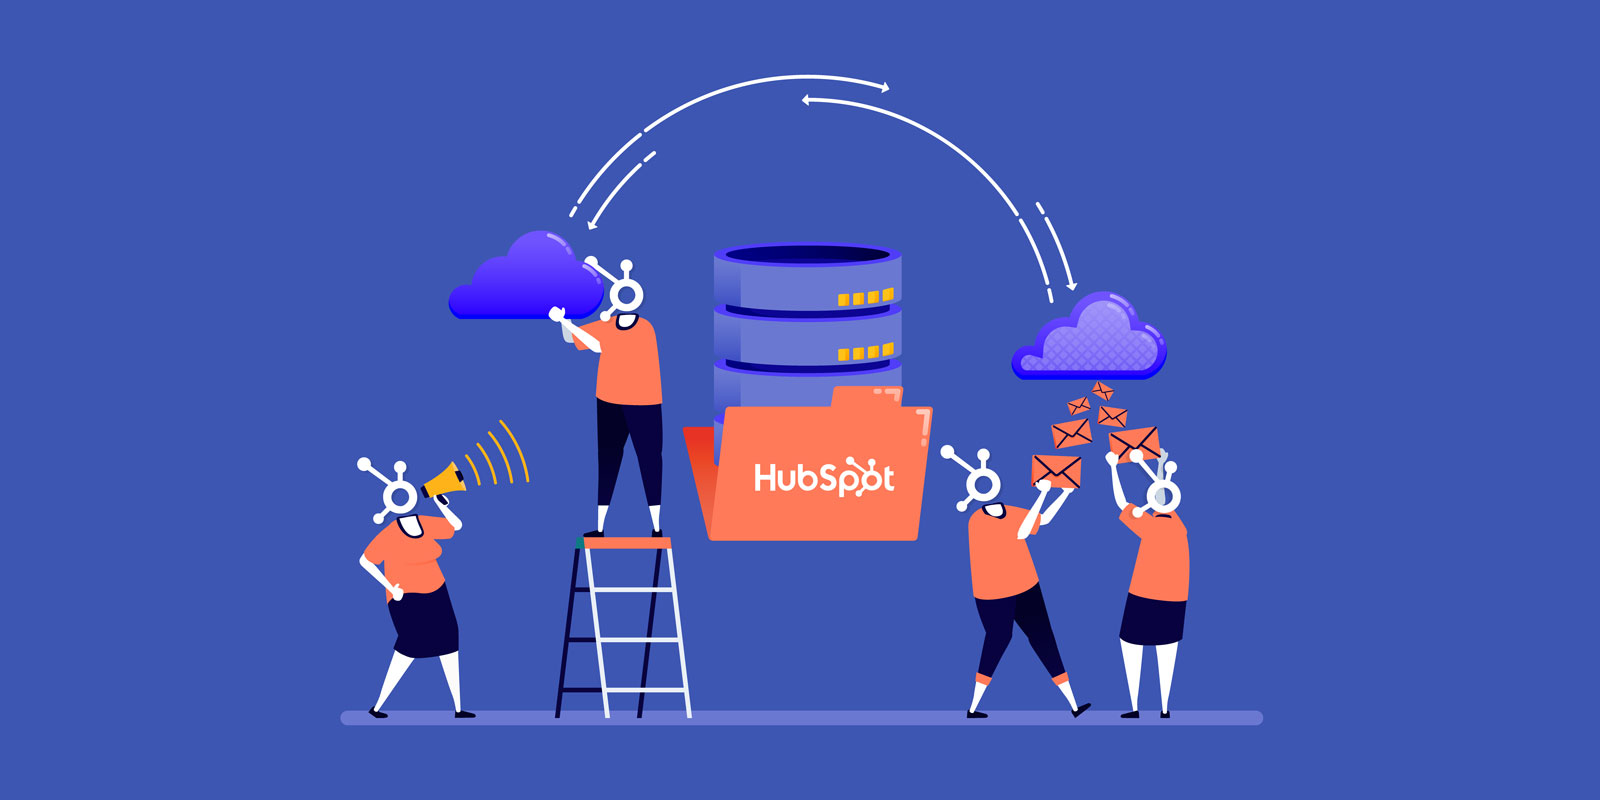 How to migrate to HubSpot